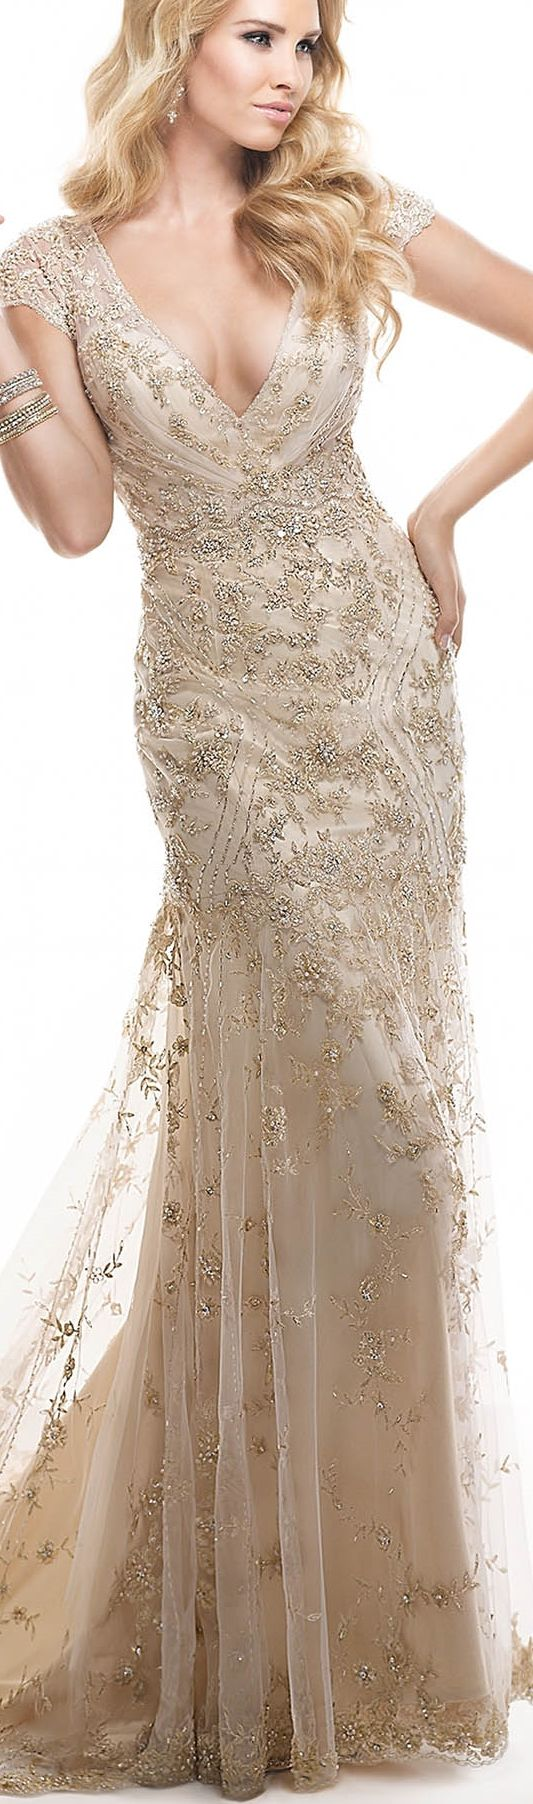 Maggie Sottero | Tuscany | All things feminine are found in this dazzling sheath gown - a dramatic back, delicate cap-sleeves and sparkling lace. Beaded metallic embroidery on tulle features twinkling Swarovski crystals, finished with zipper over inner elastic and crystal button closure. Ivory over Alabaster, Gold over Champagne